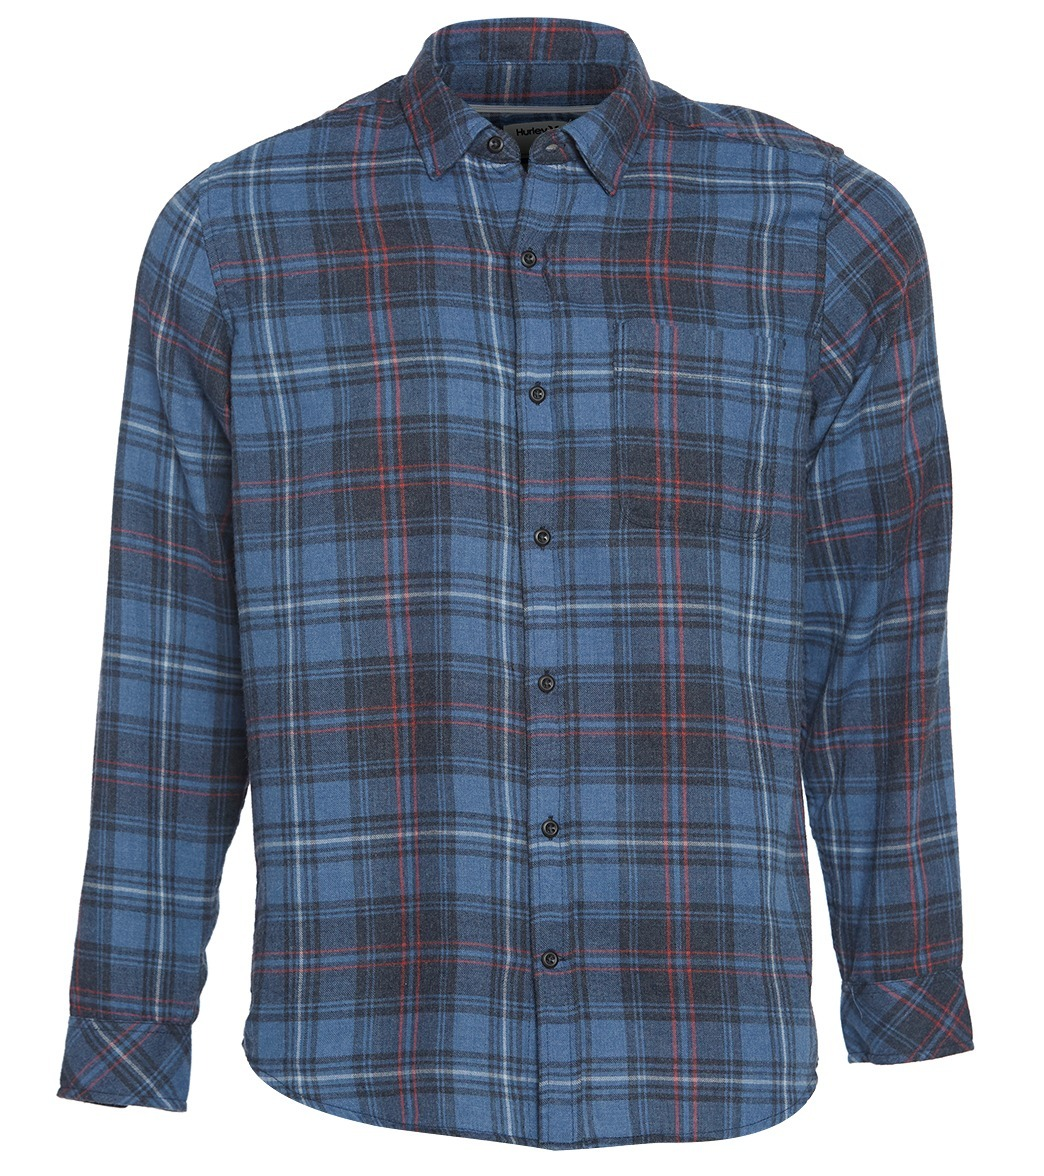 New Boys Flannel Shirt Hurley Vedder Washed L//S Shirt Anthracite